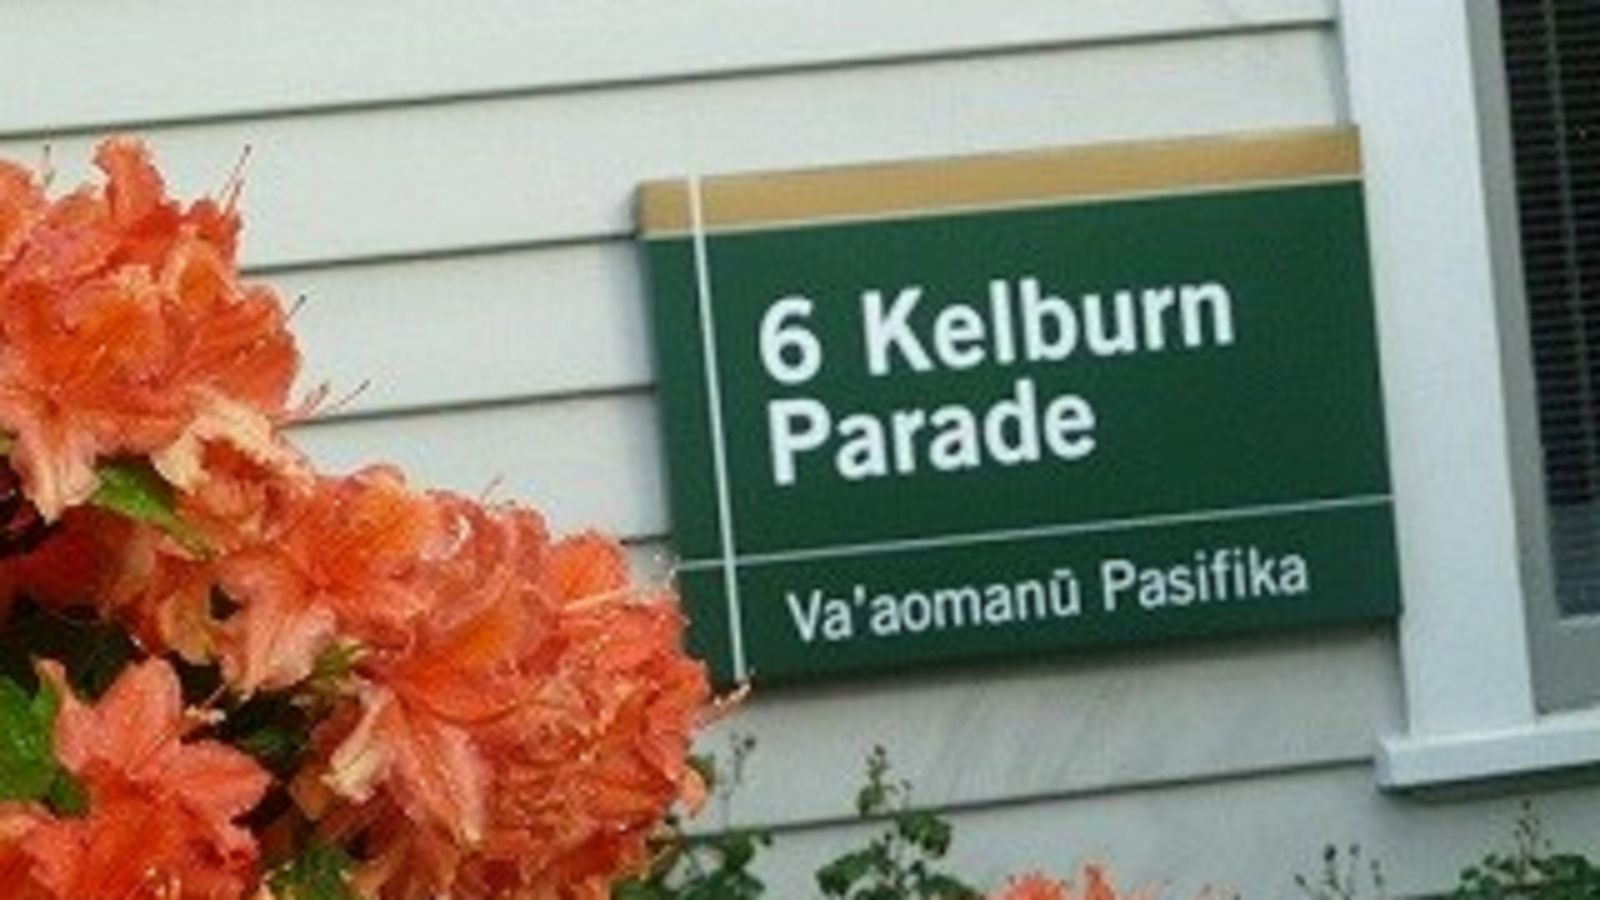 Sign on house saying 6 Kelburn Parade with flowers in foreground